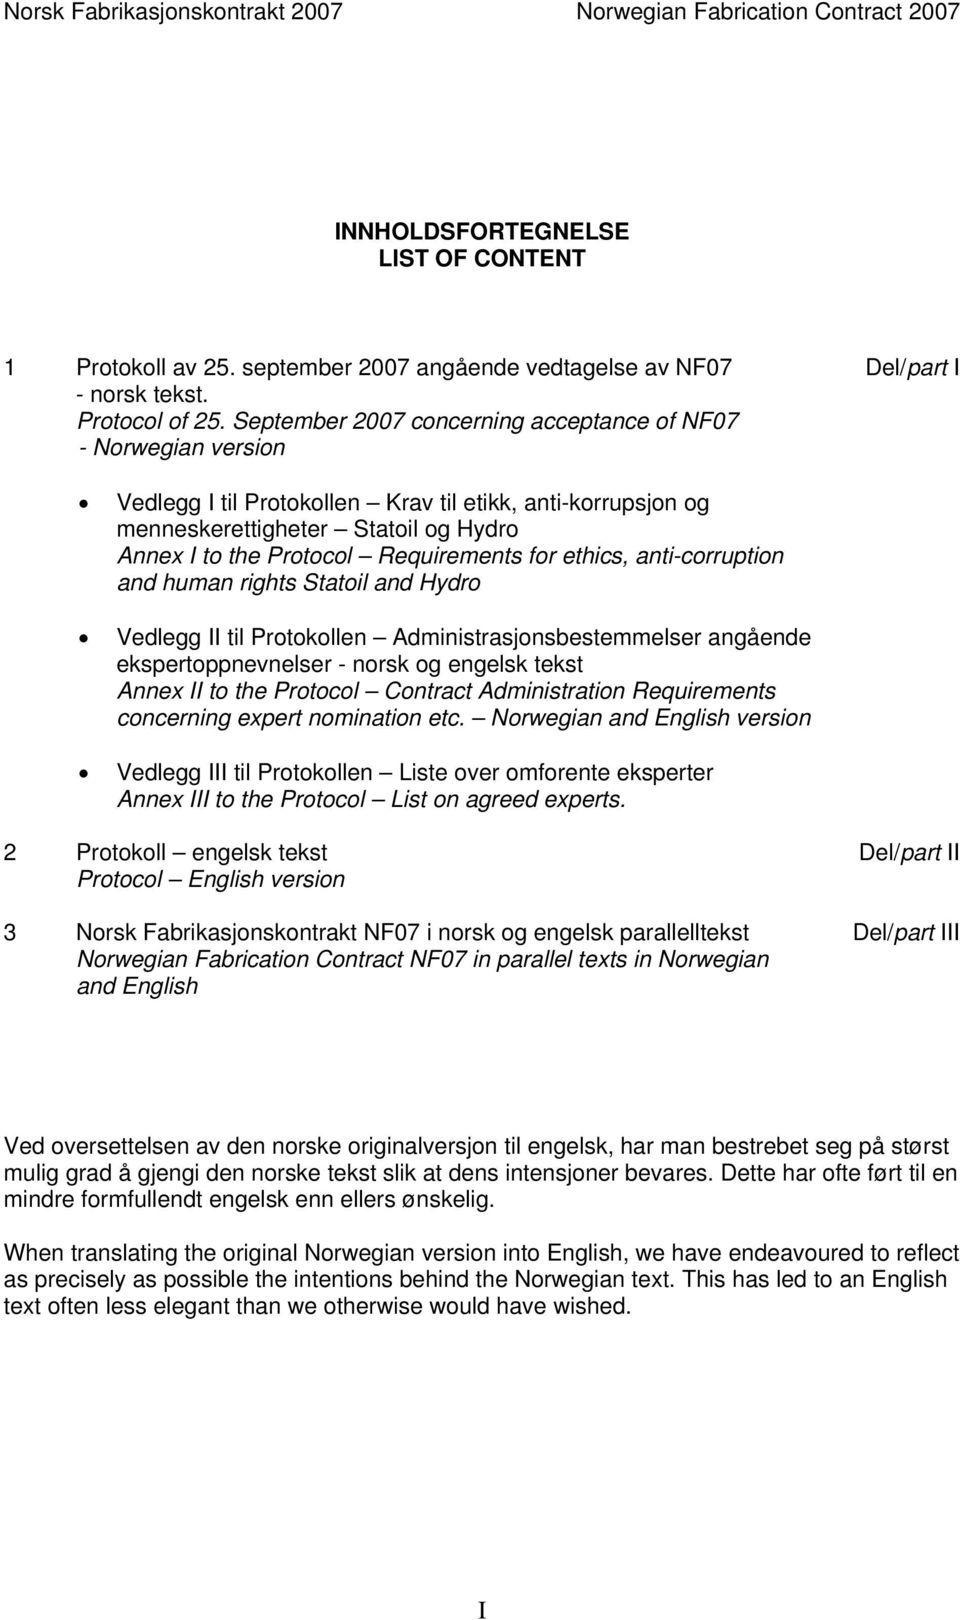 September 2007 concerning acceptance of NF07 - Norwegian version Vedlegg I til Protokollen Krav til etikk, anti-korrupsjon og menneskerettigheter Statoil og Hydro Annex I to the Protocol Requirements